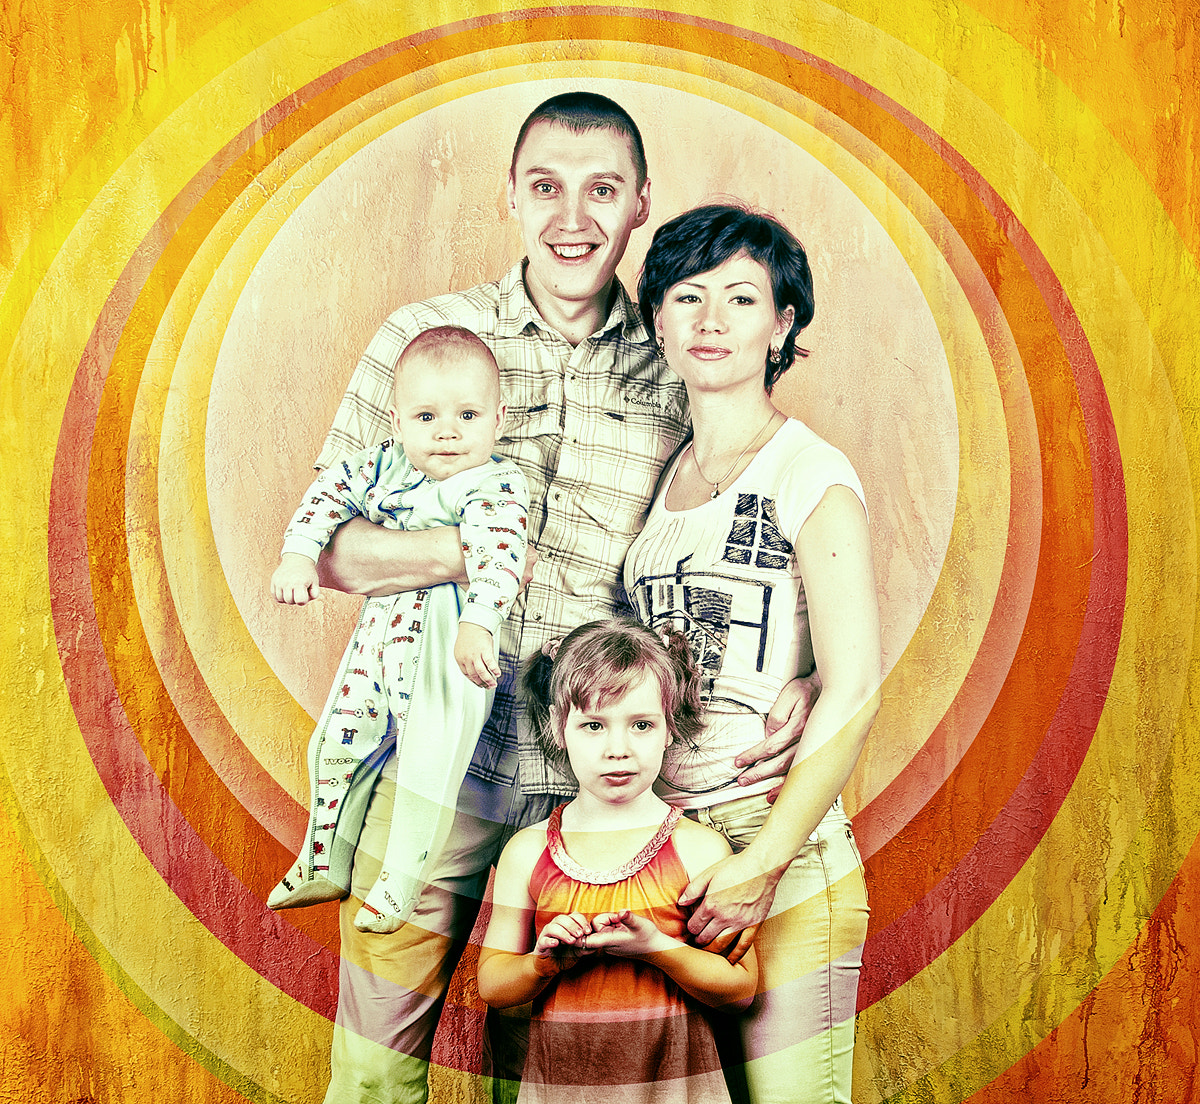 Photograph Family Portrait in circles. Option number 1 by ilya borshevsky on 500px